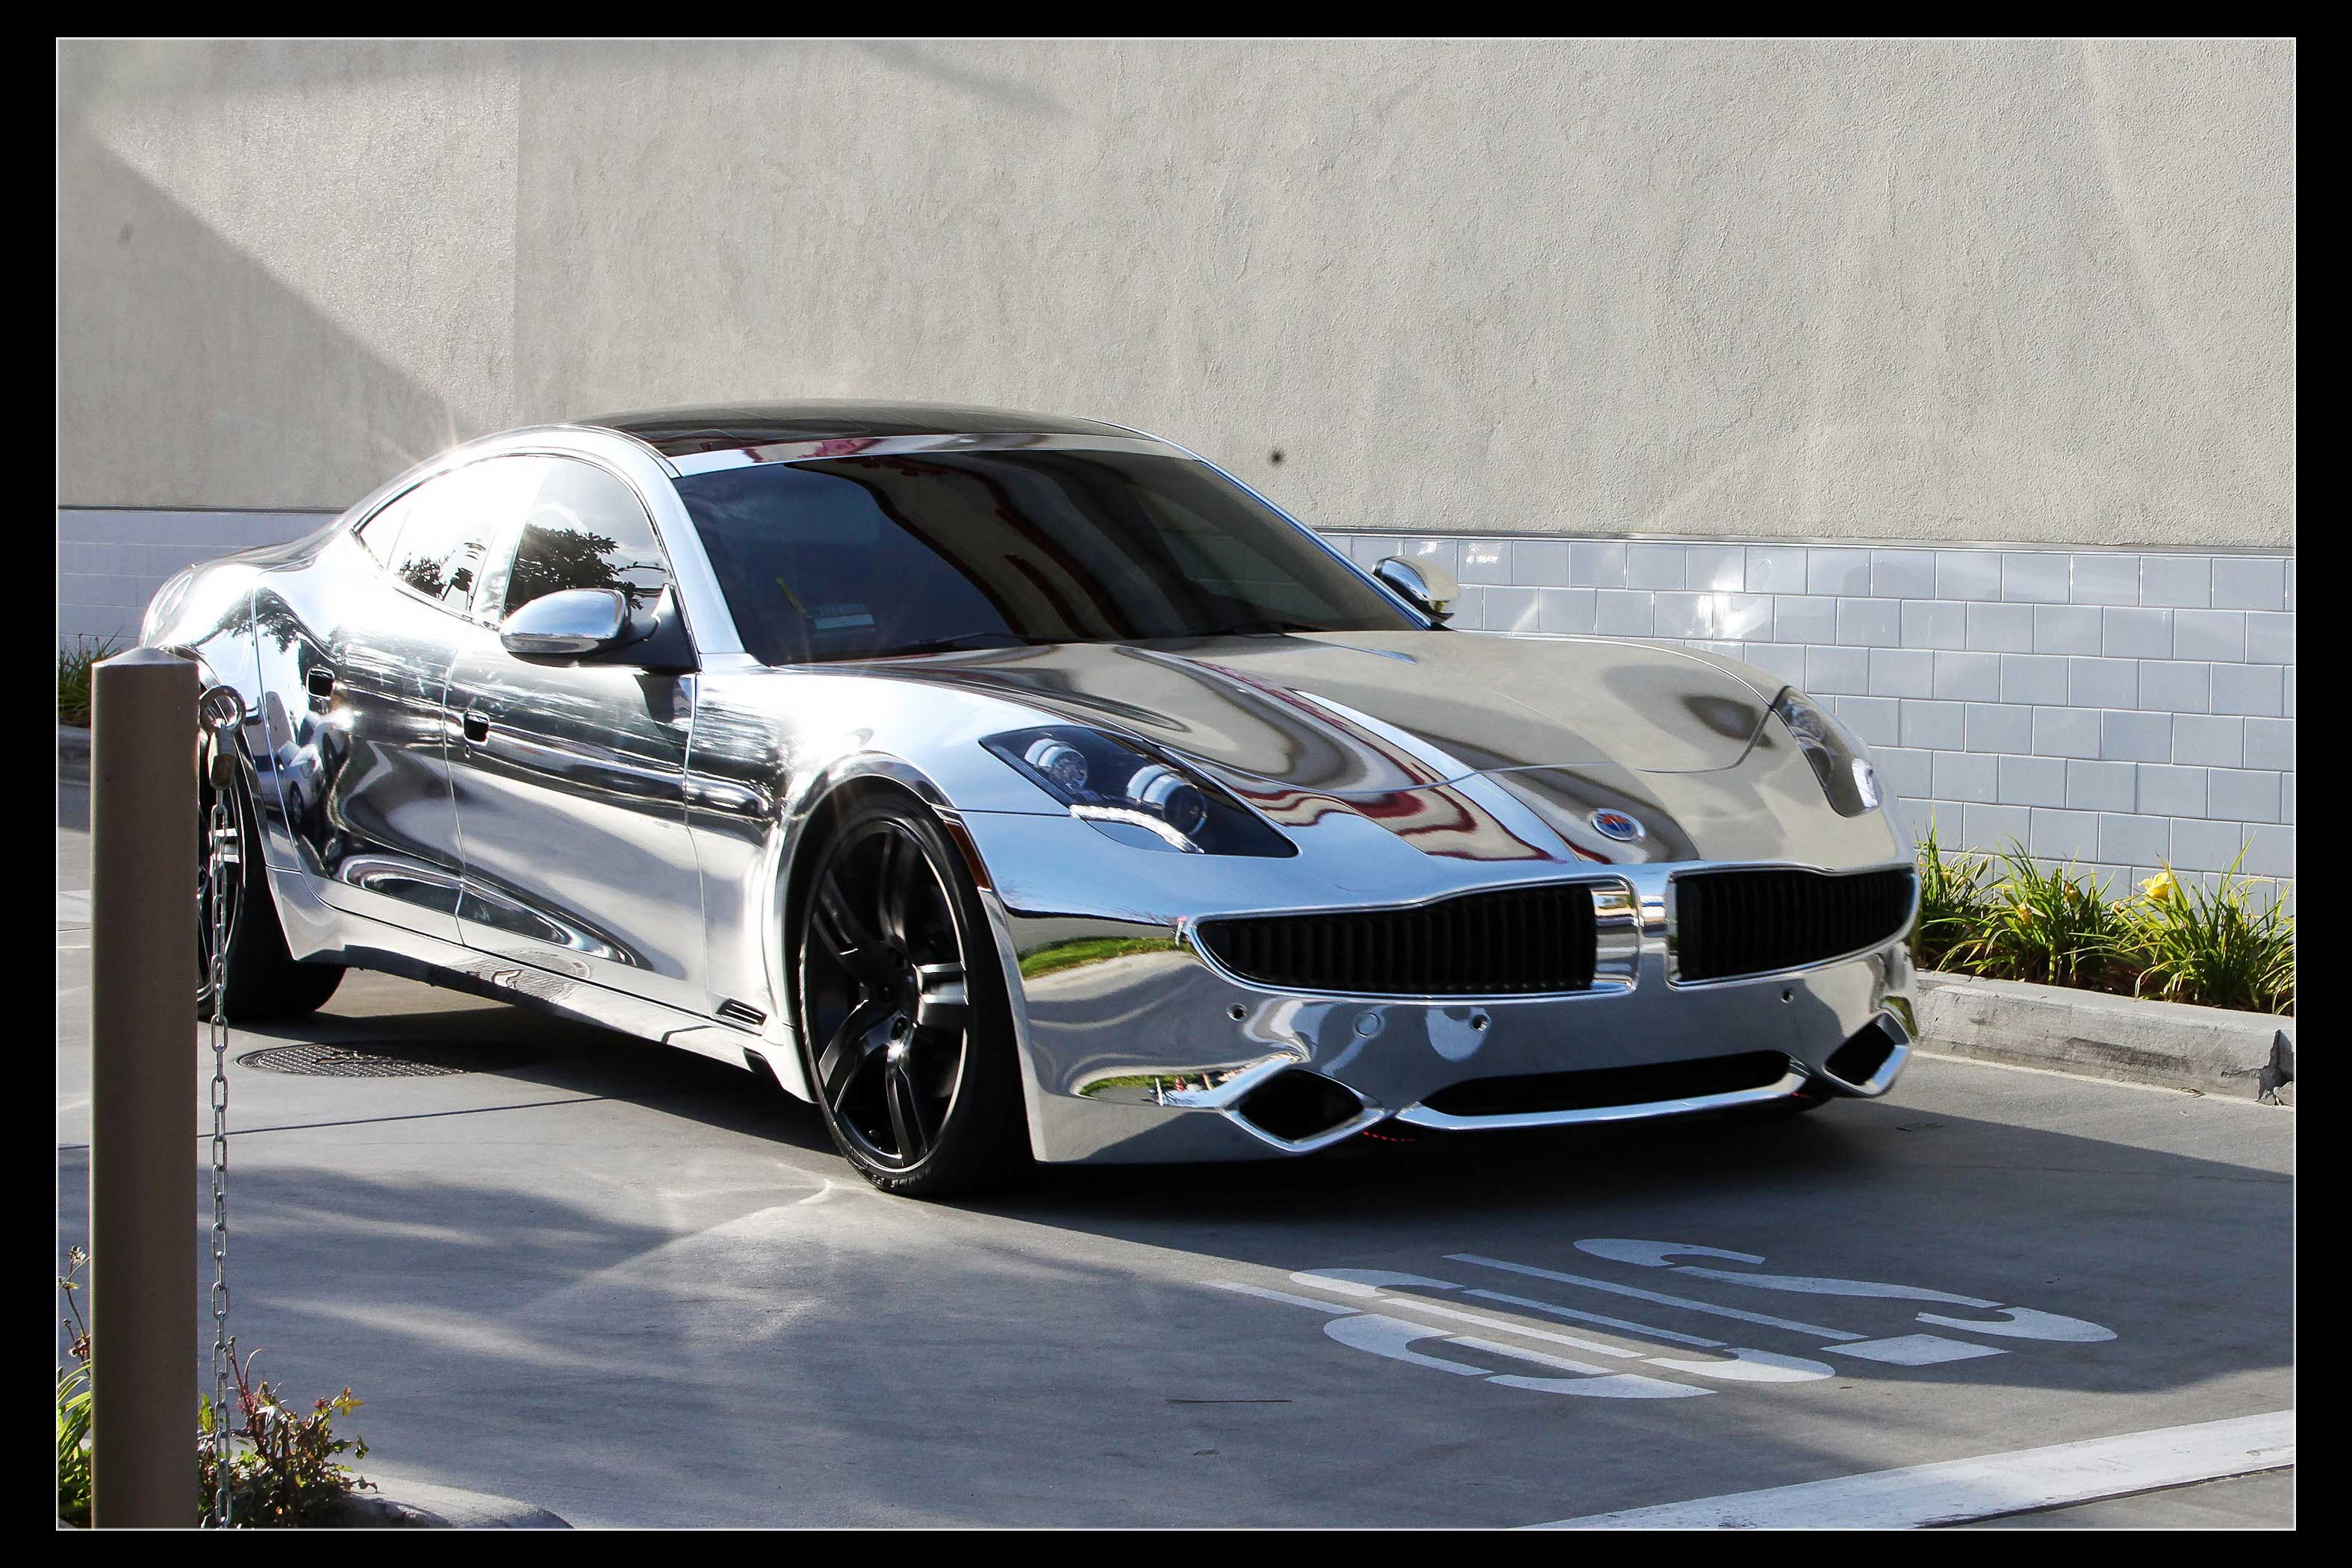 Justin-Biebers-car-chrome-f.jpg